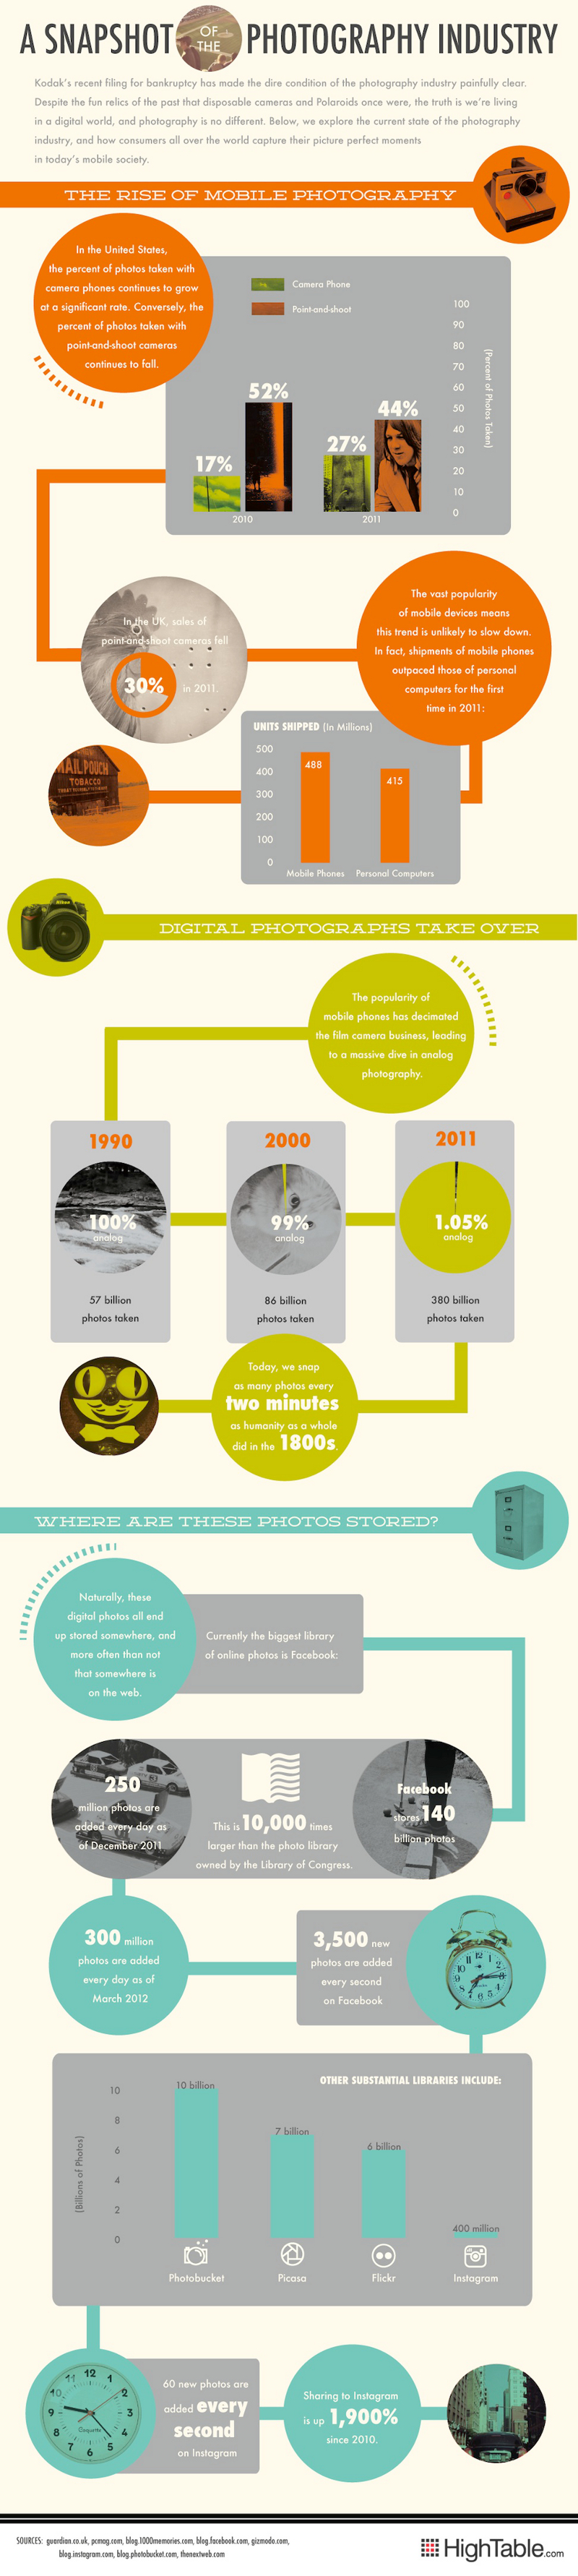 Photography Industry Trends and Statistics